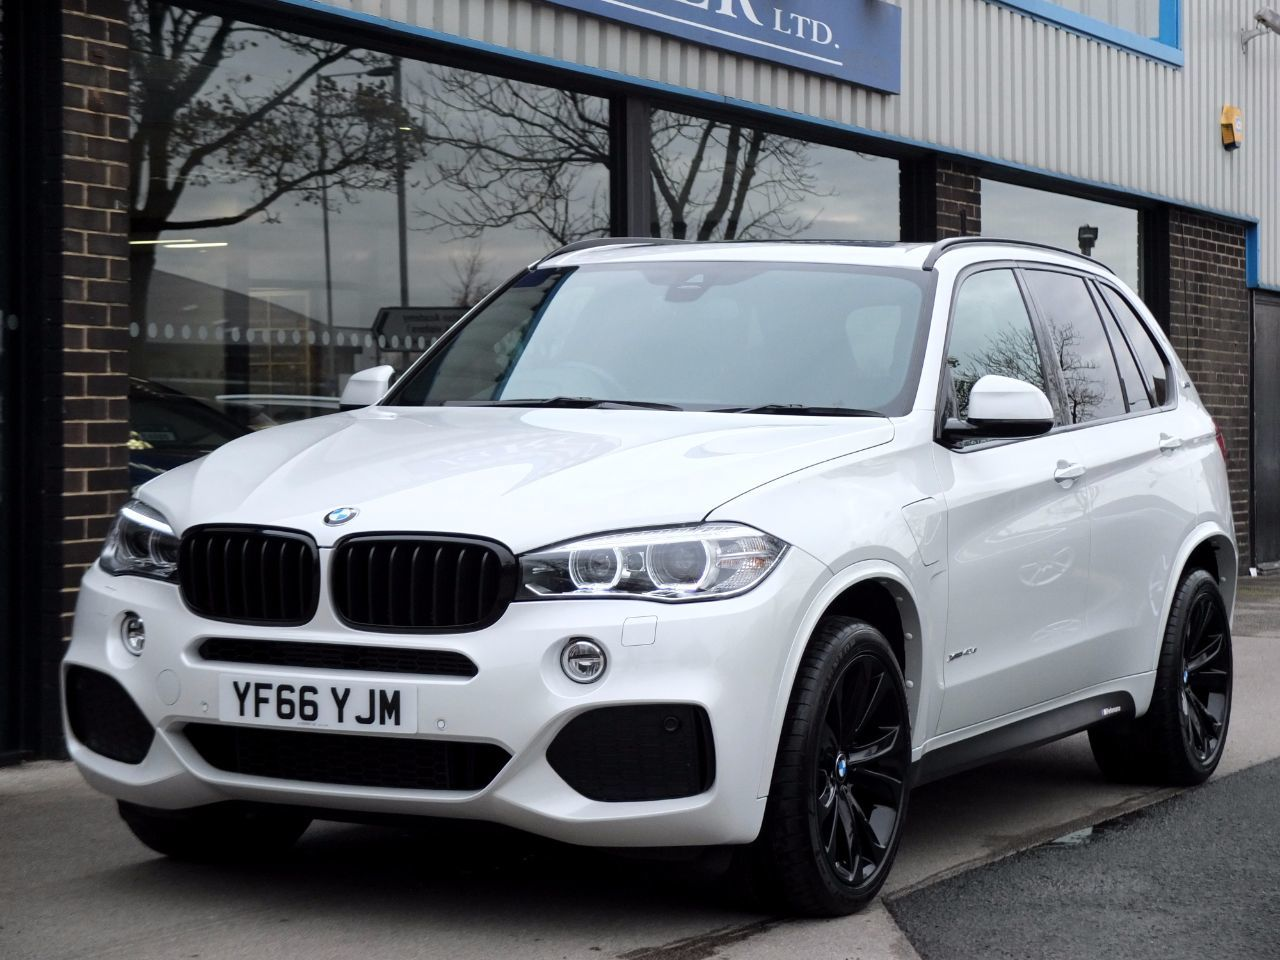 BMW X5 2.0 xDrive40e M Sport (Electric Plug in Hybrid) Auto Estate Hybrid Mineral White MetallicBMW X5 2.0 xDrive40e M Sport (Electric Plug in Hybrid) Auto Estate Hybrid Mineral White Metallic at fa Roper Ltd Bradford